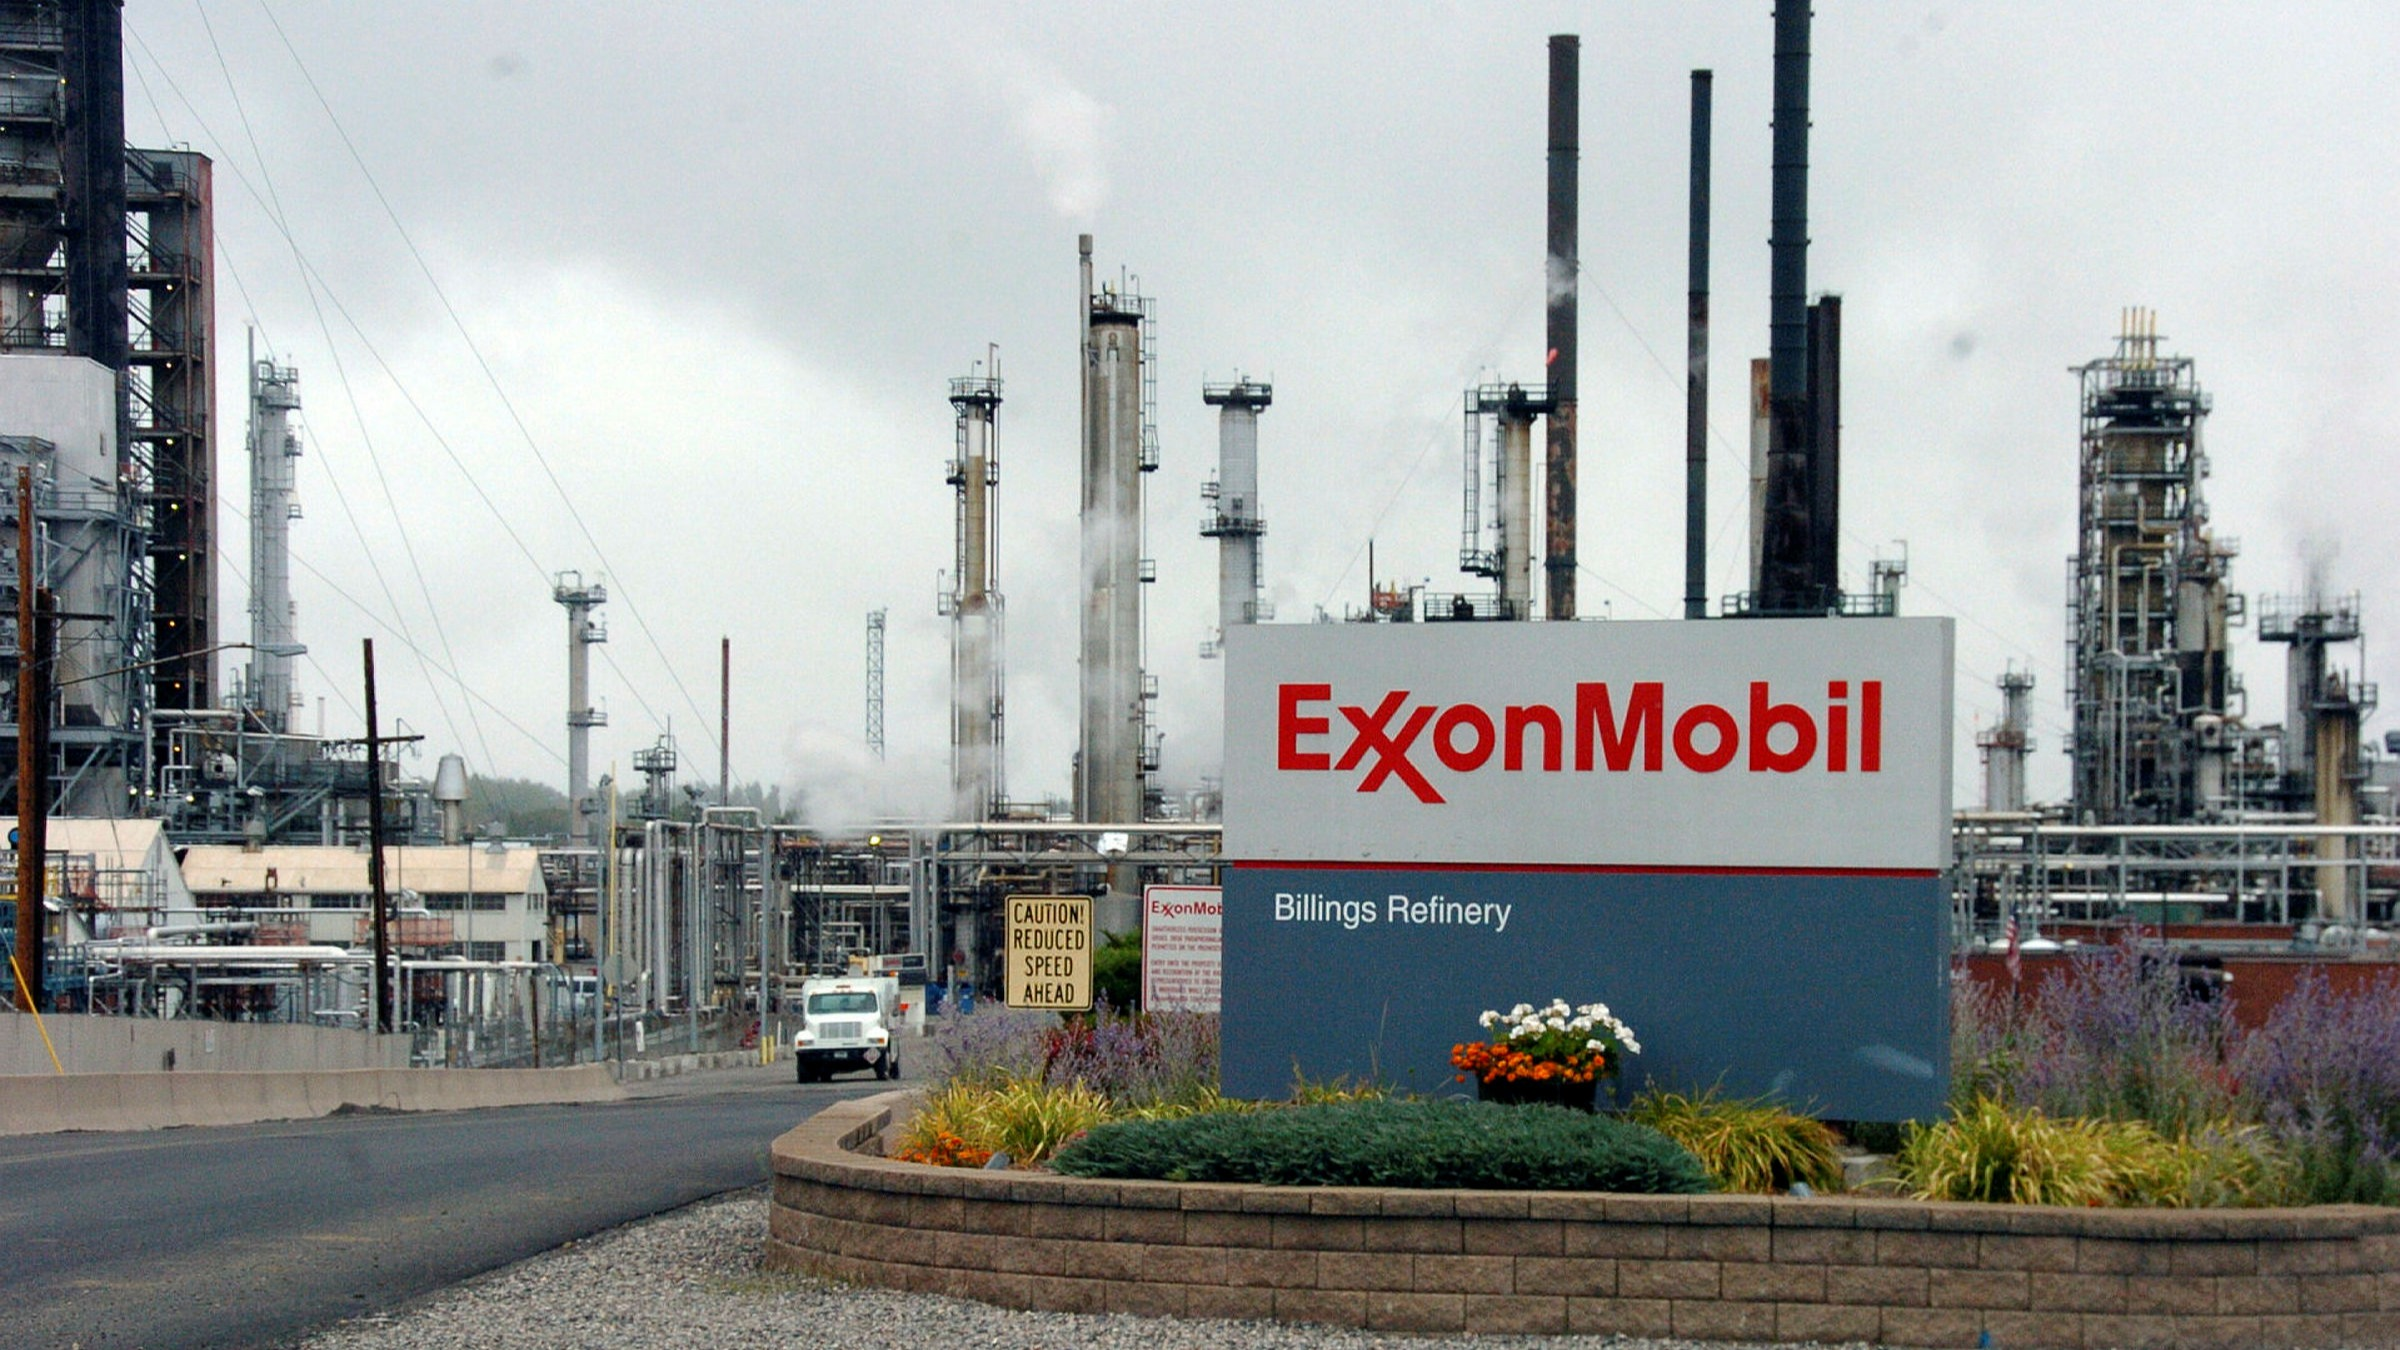 Exxon adds two board directors in wake of activist pressure   Financial  Times